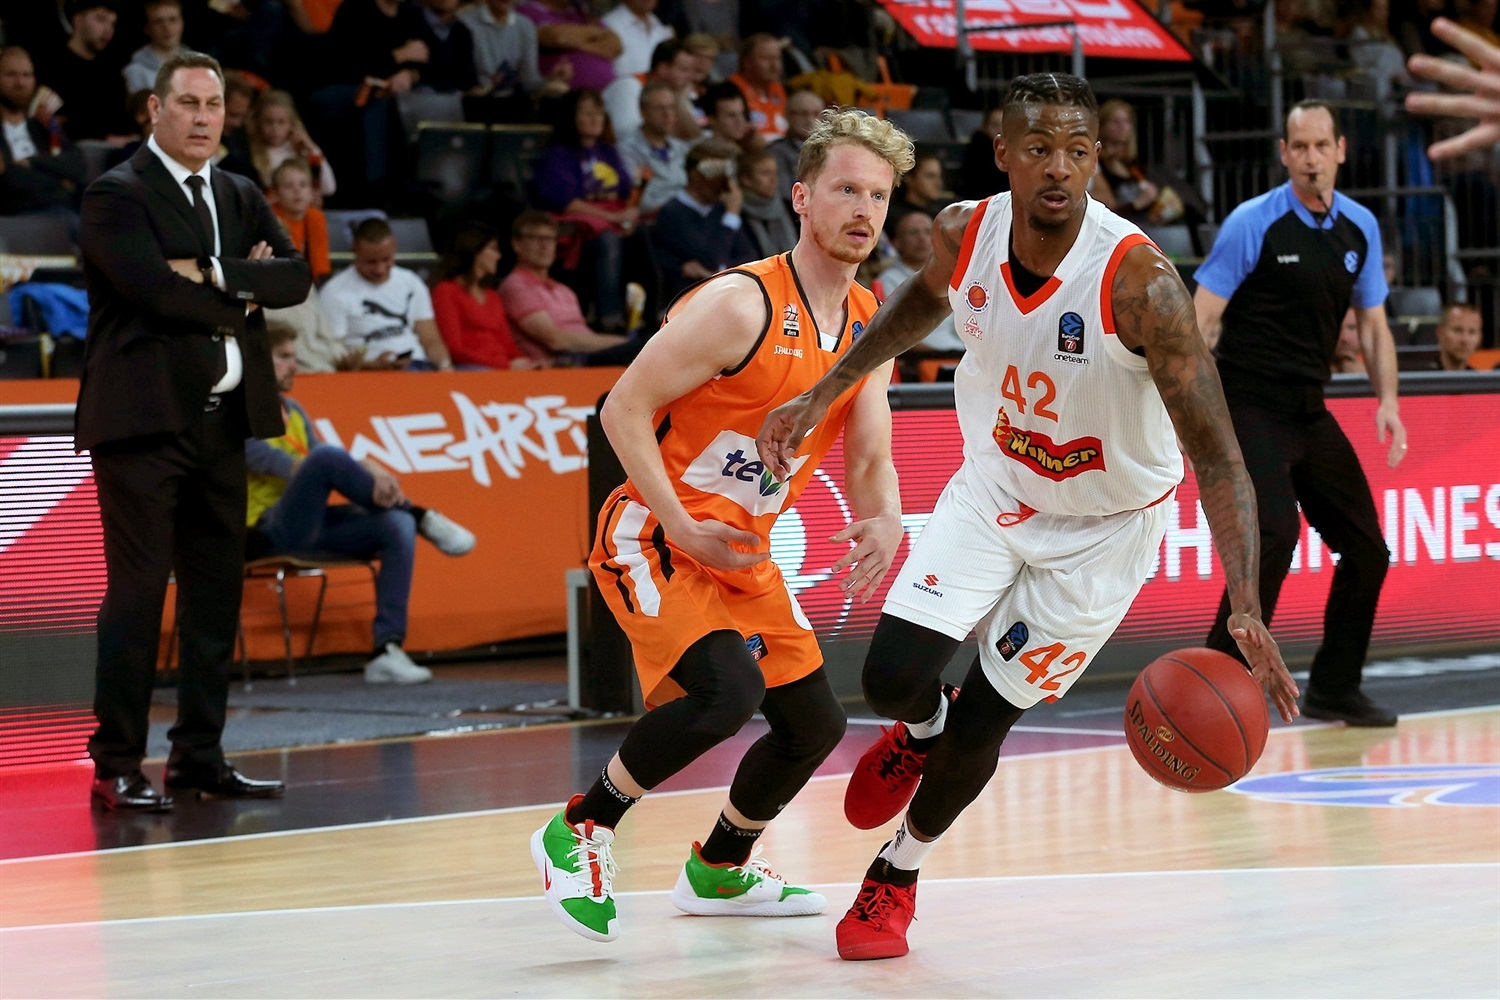 Alex Hamilton - Maccabi Rishon Lezion (photo Ulm - Harry Langer) - EC19